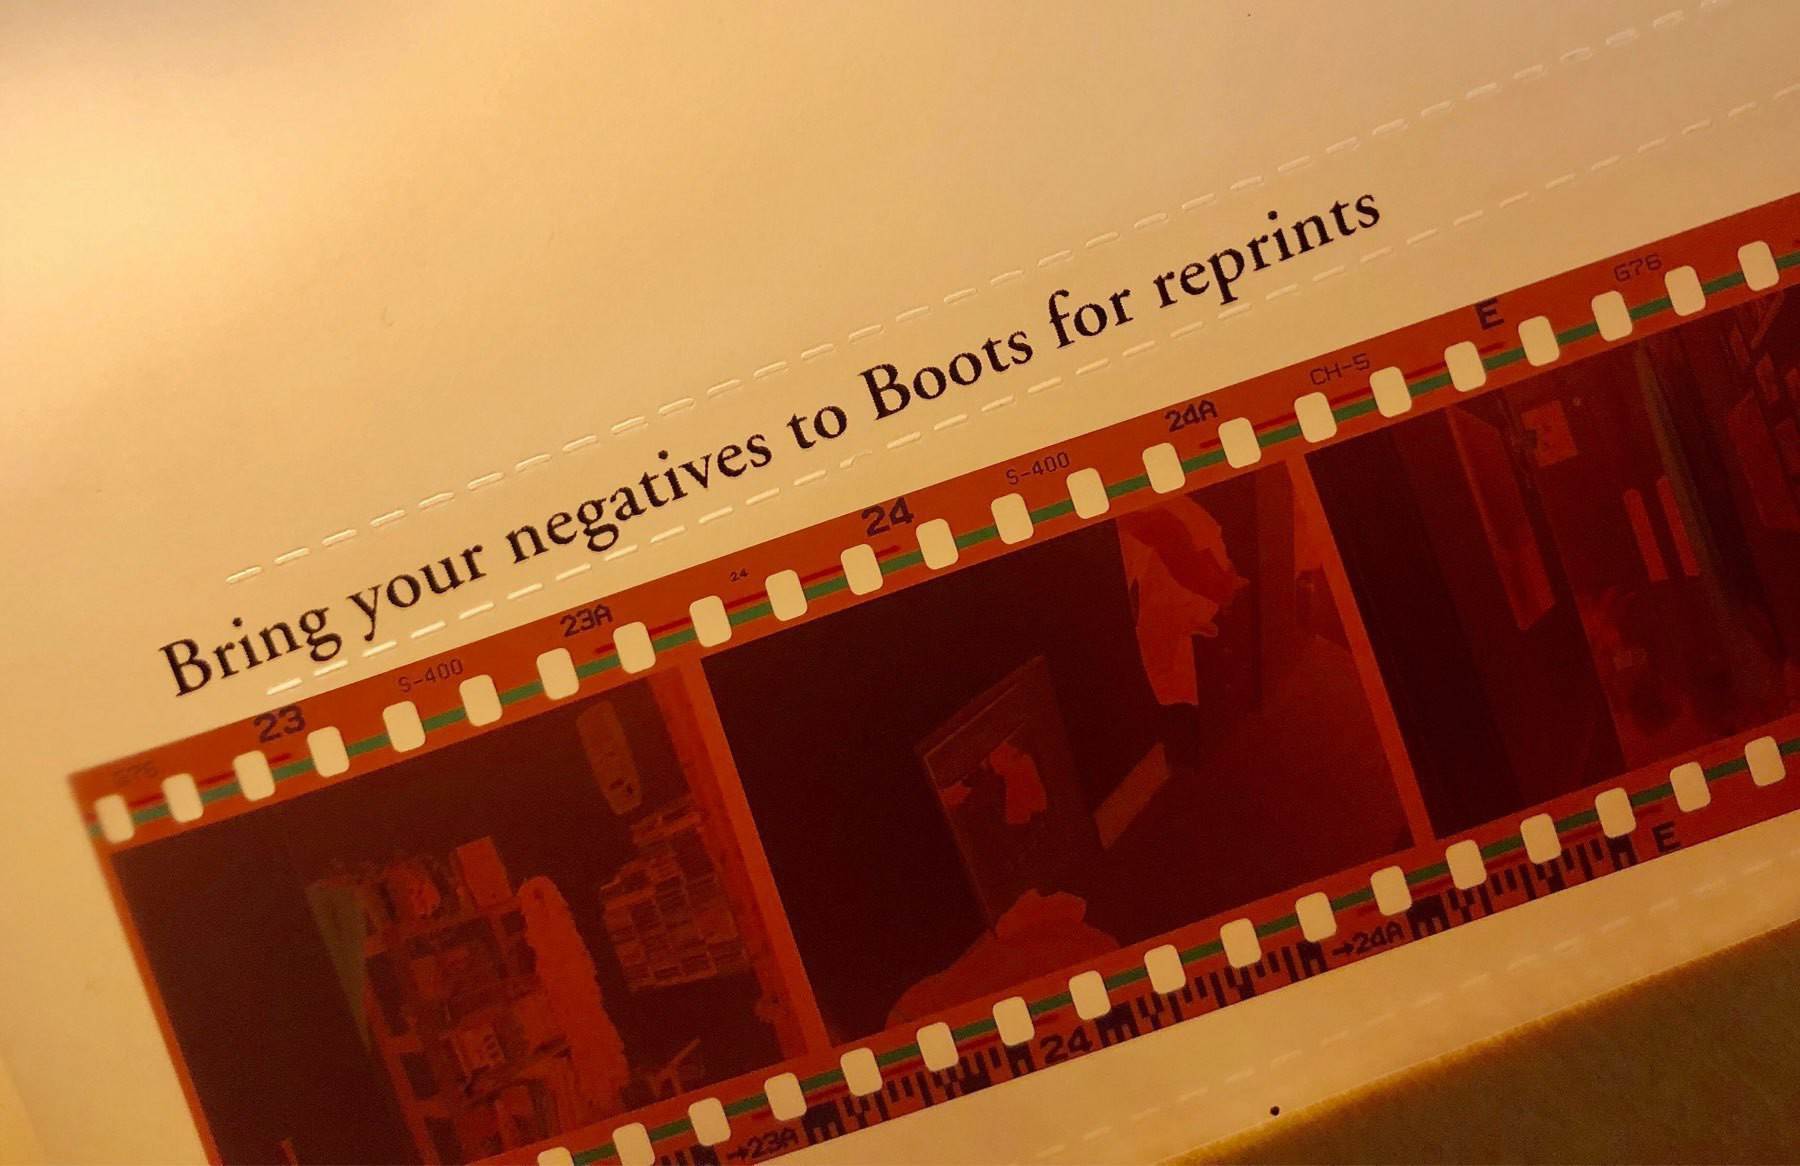 A negative packet, with promos for Boots' reprints service